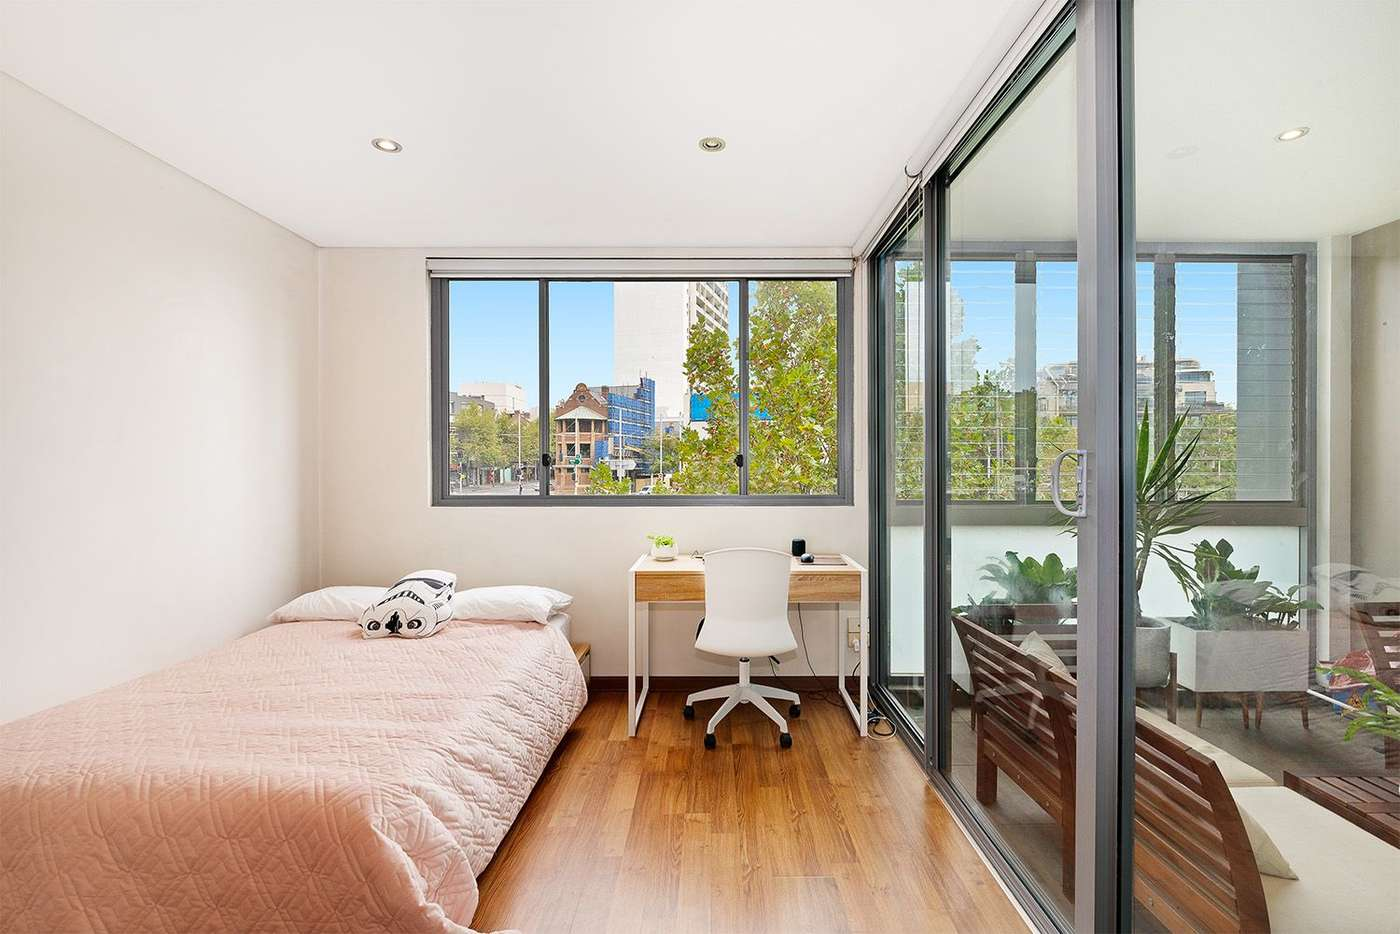 Sixth view of Homely apartment listing, 9/238 William Street, Potts Point NSW 2011